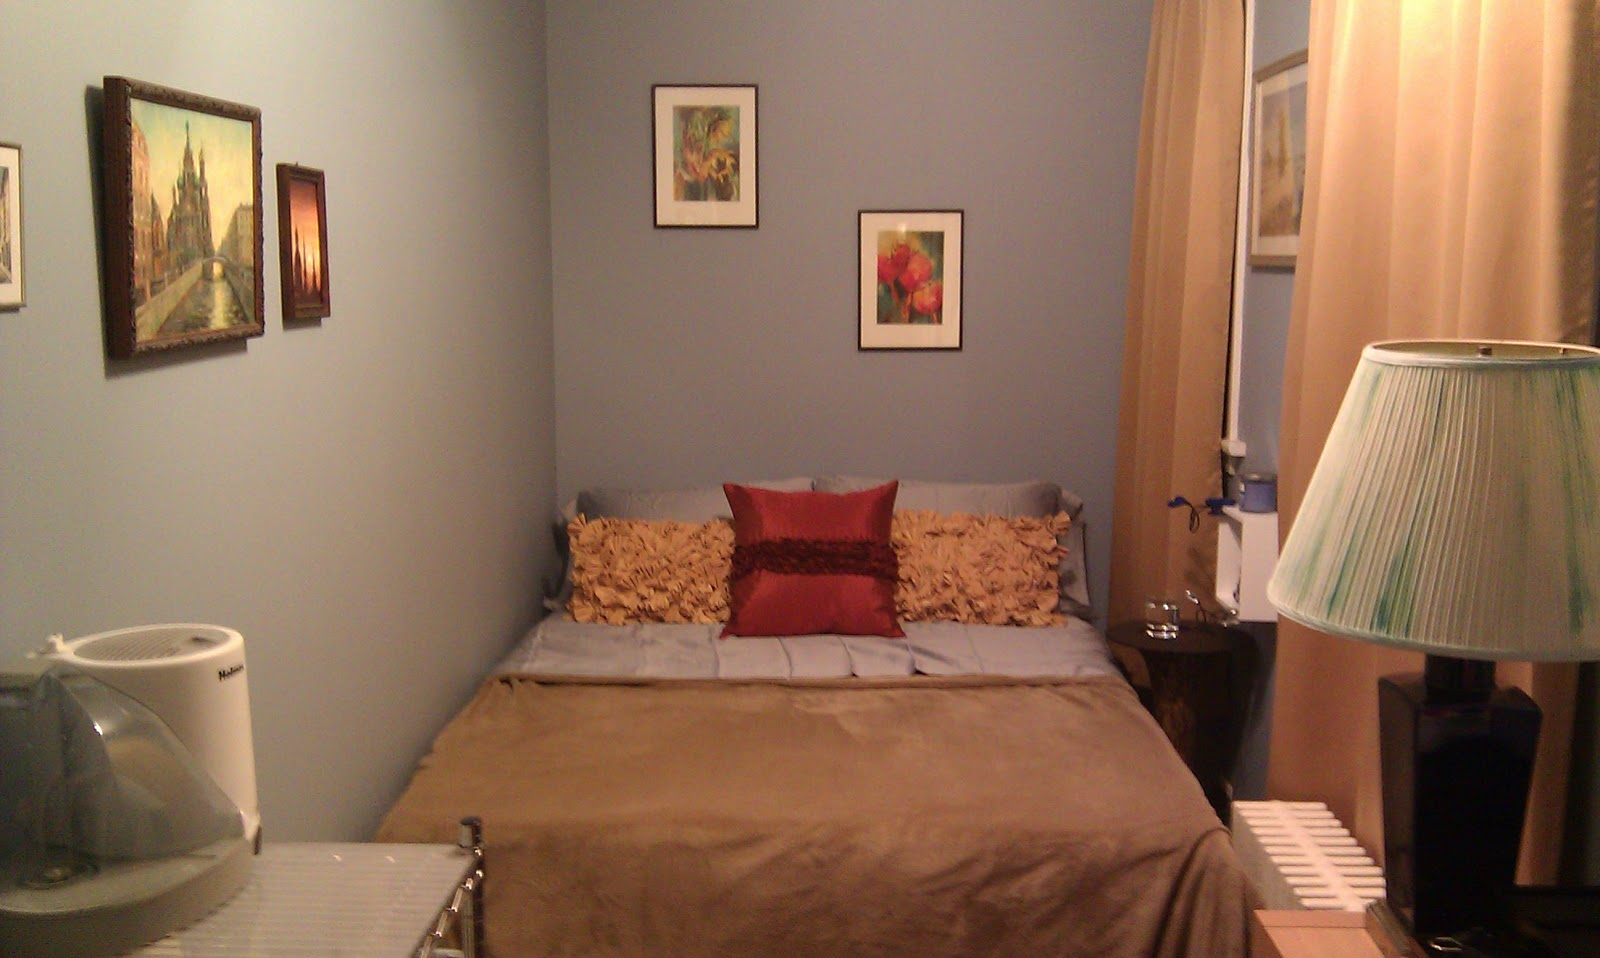 Small Old Apartment Ideas delighful small old bedroom view in gallery wooden attic modern